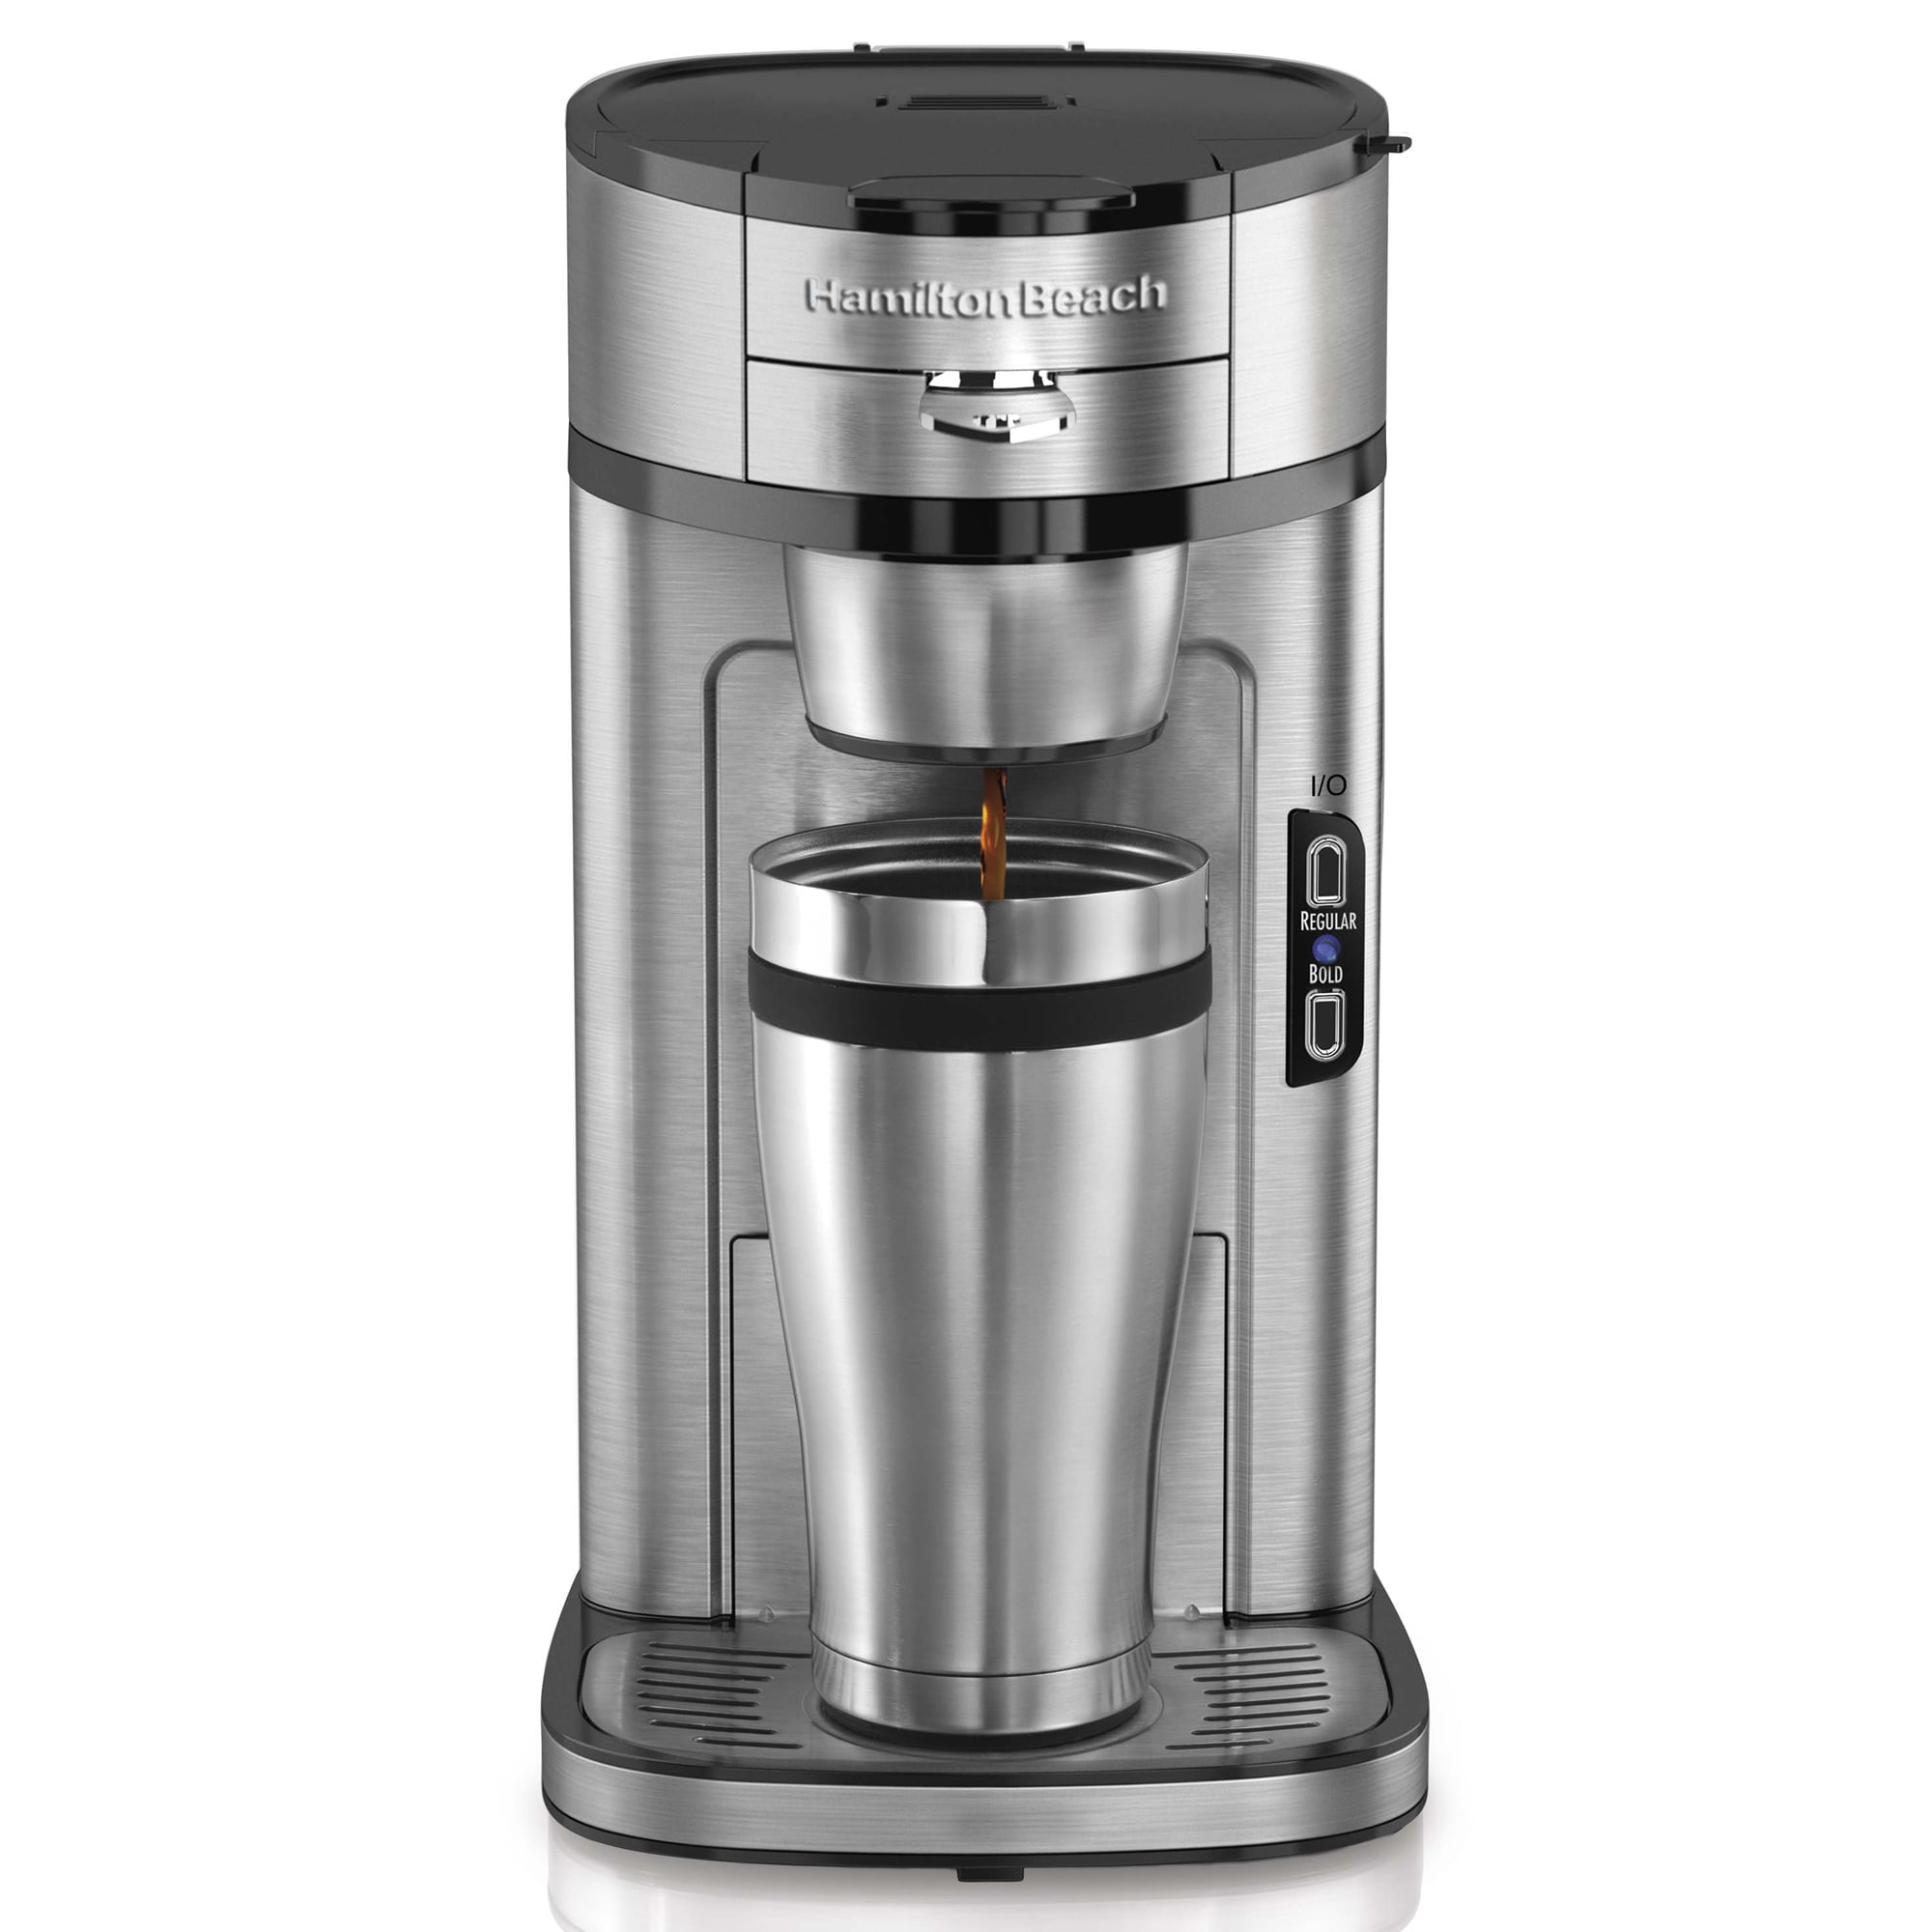 How Many Scoops In Coffee Maker : Hamilton Beach Single Serve Scoop Coffee Maker - 13747545 - Overstock.com Shopping - Great Deals ...